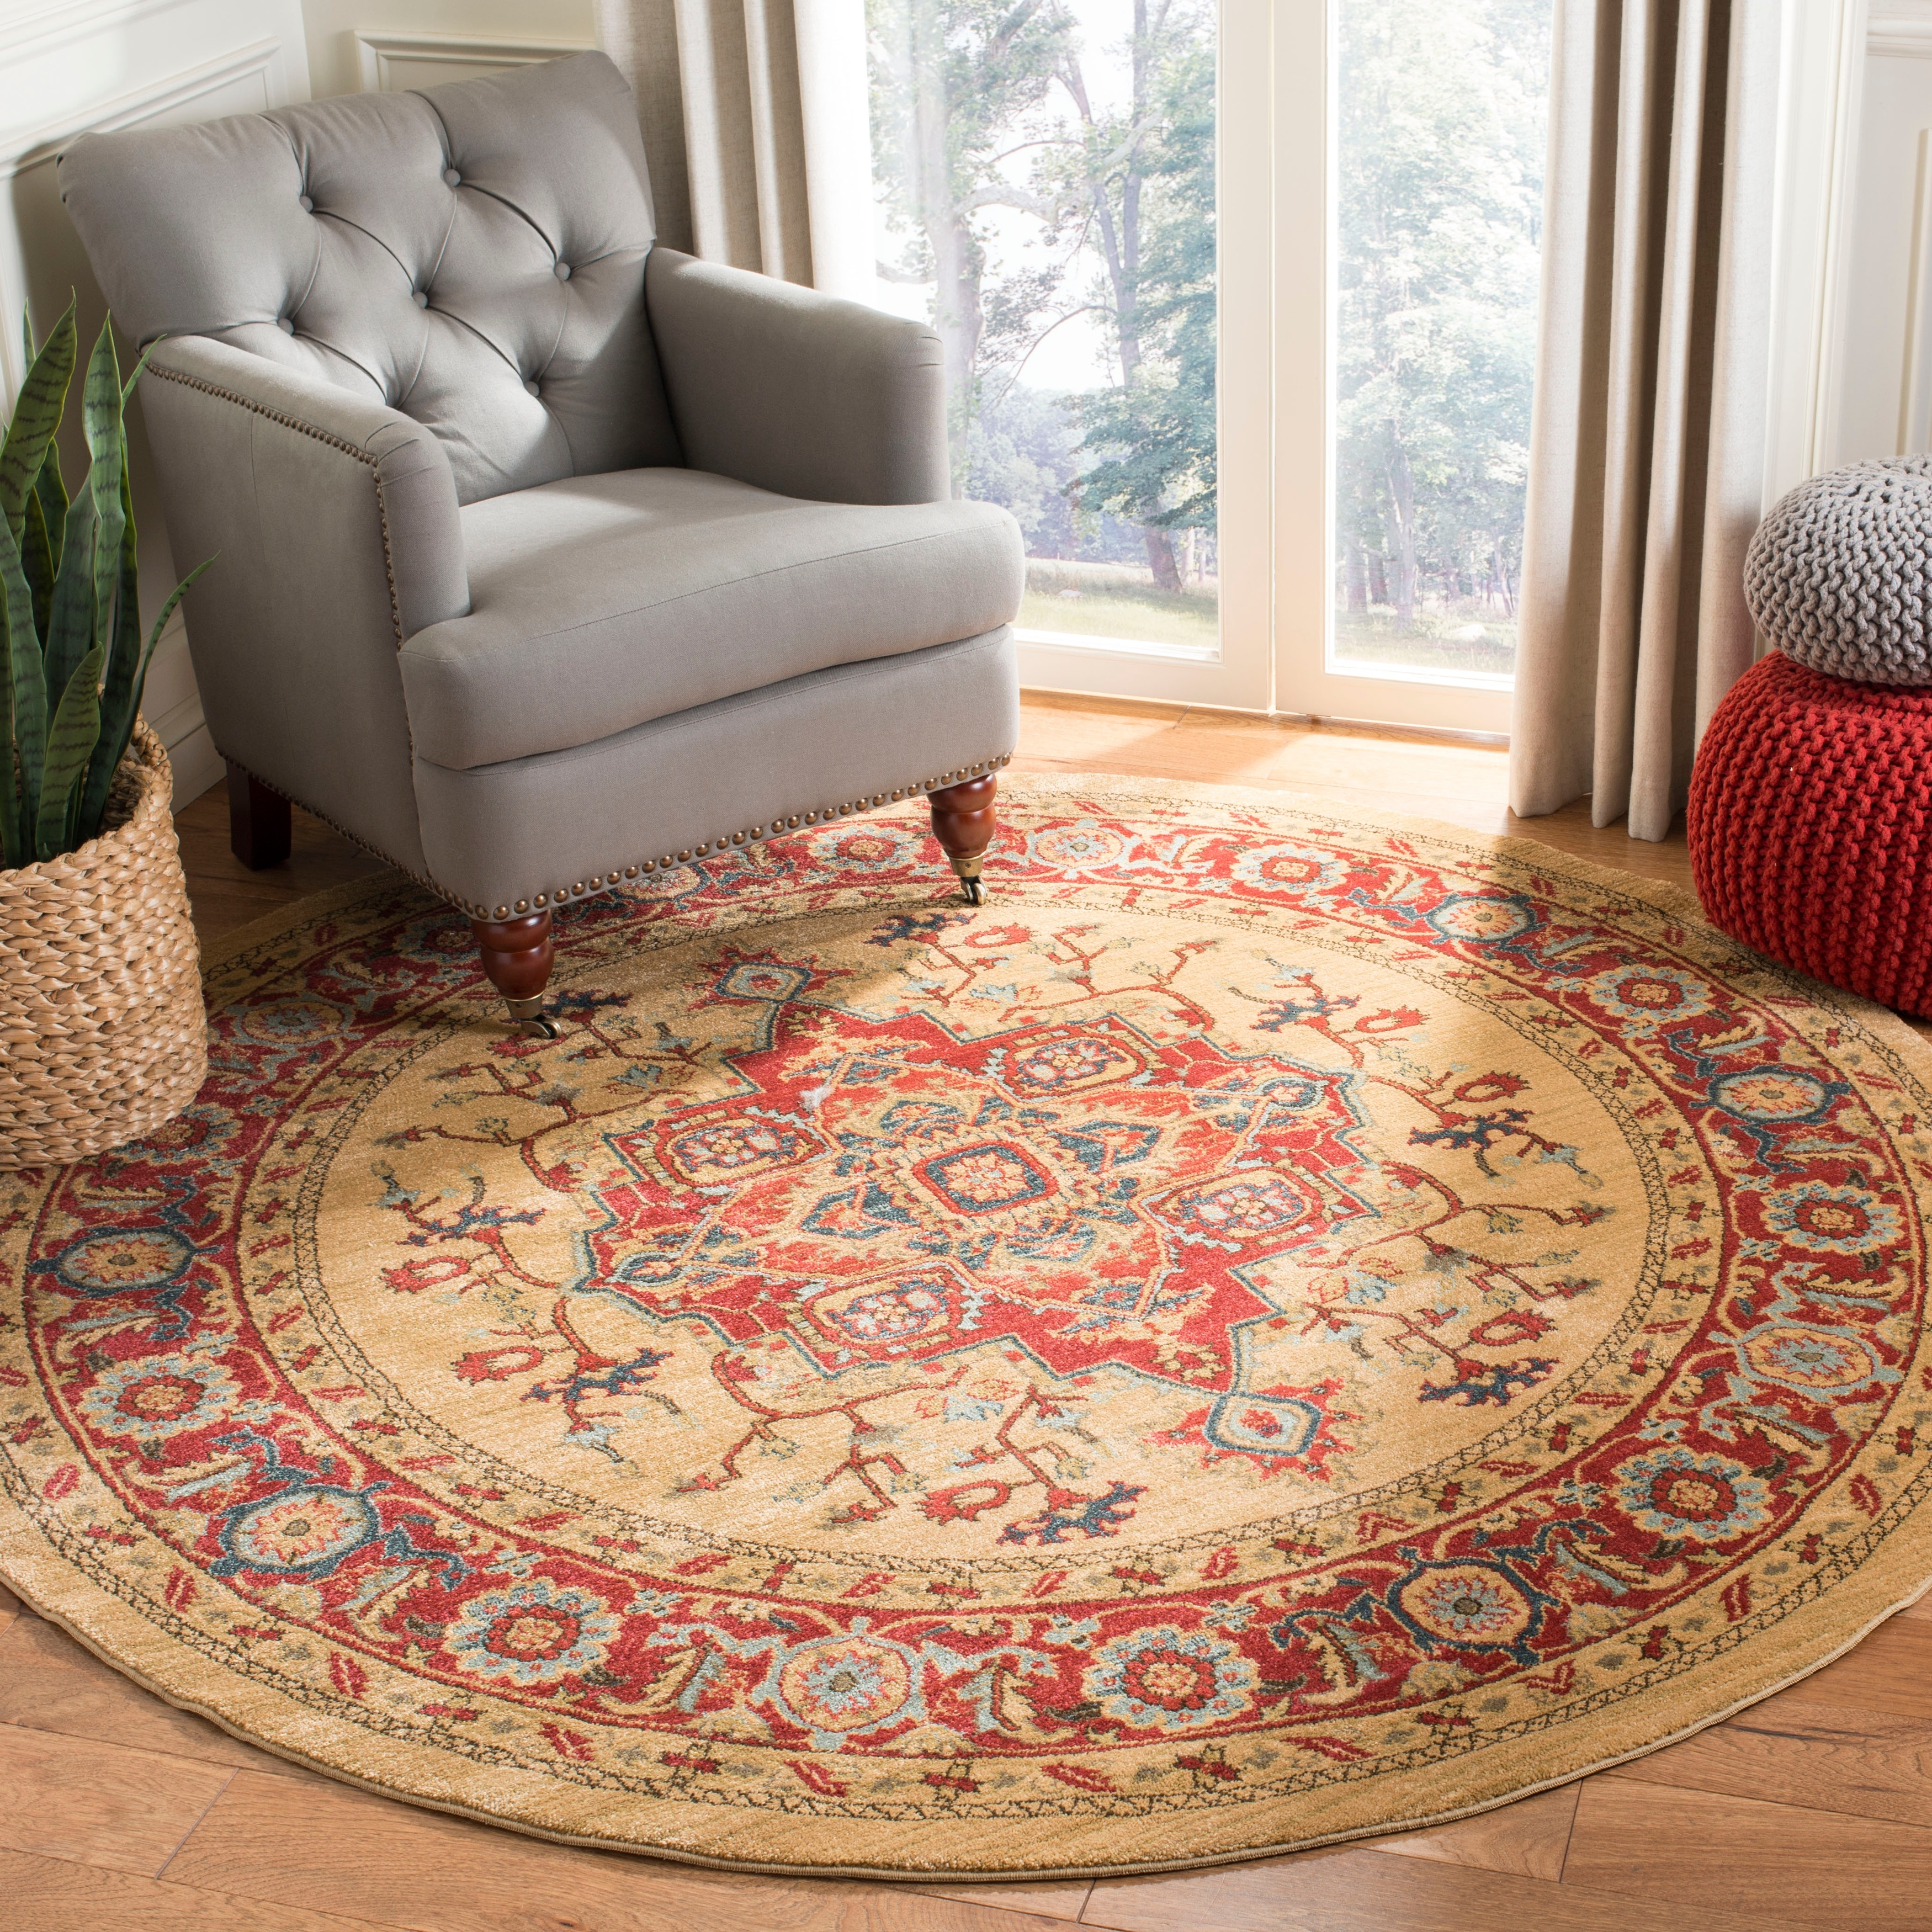 Safavieh Mahal Reka Traditional Grandeur Red Natural Rug On Sale Overstock 9508590